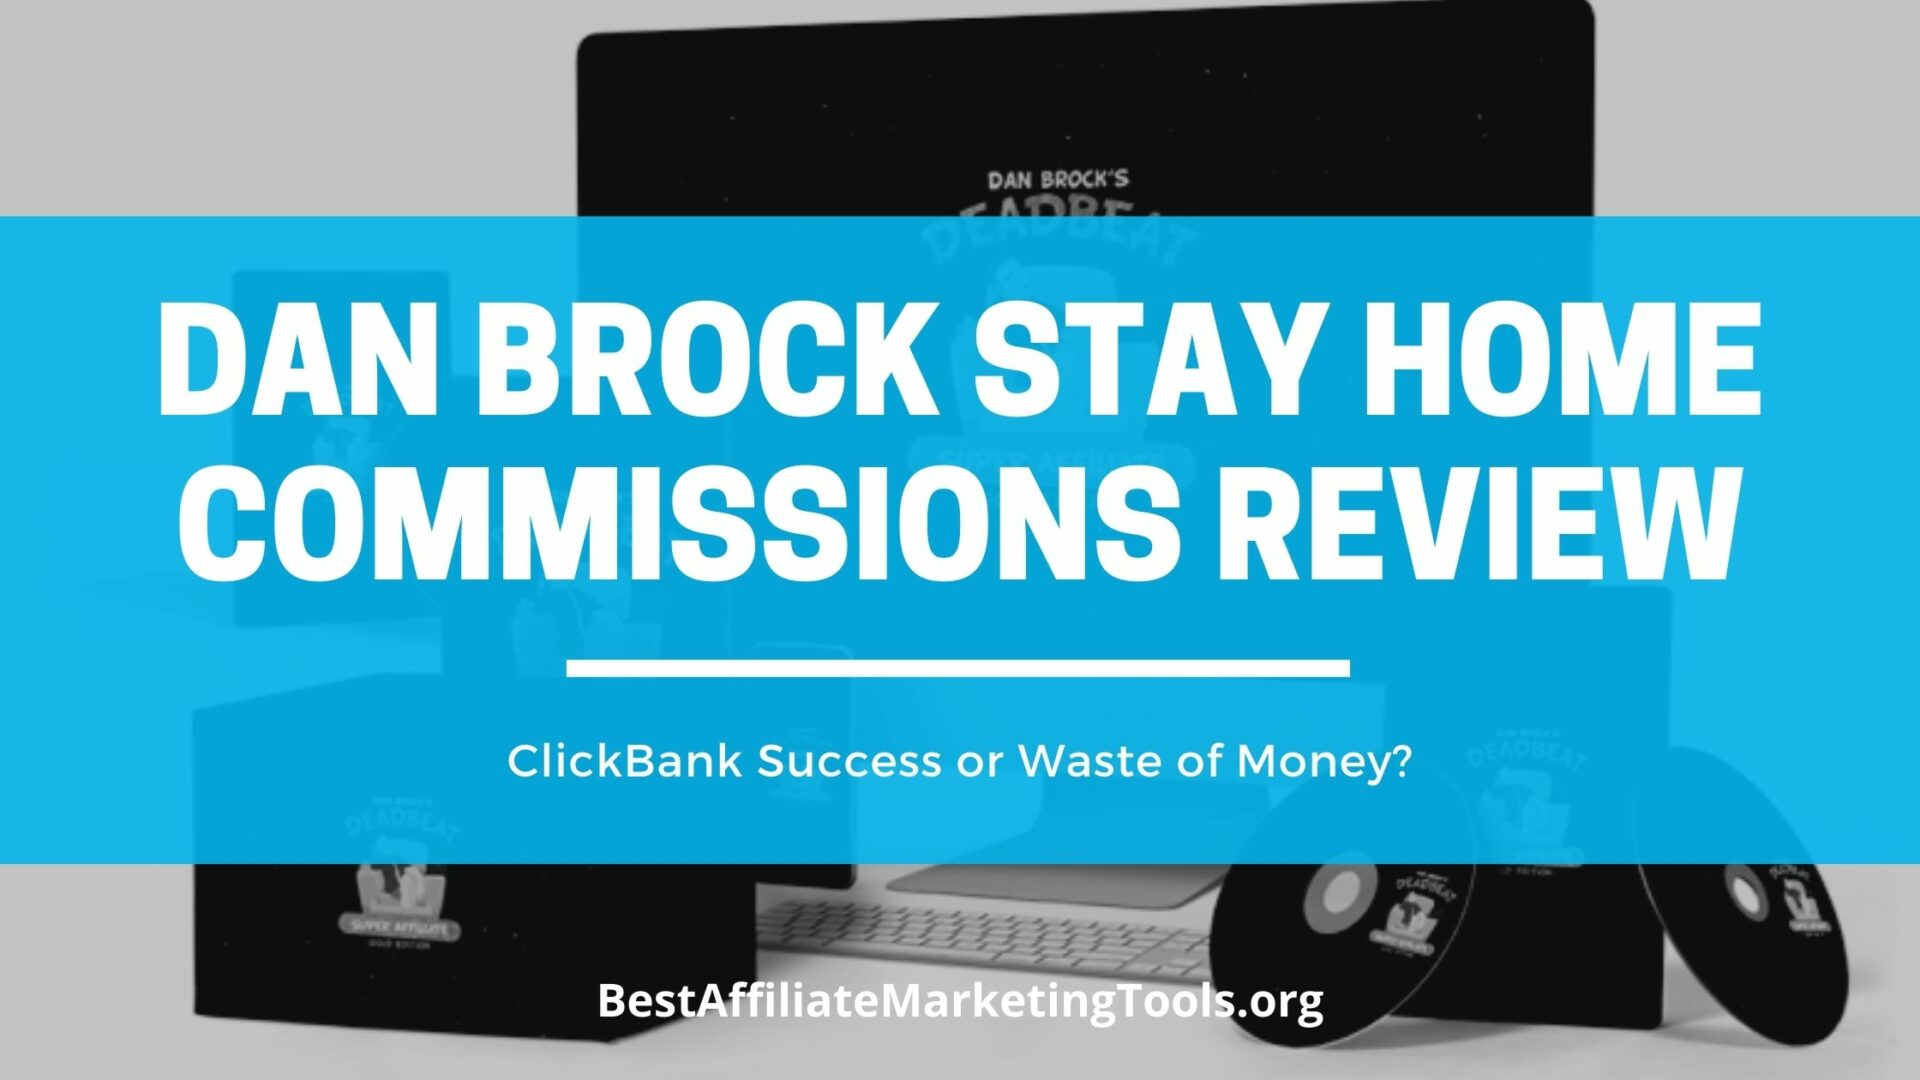 Dan Brock Stay Home Commissions Review